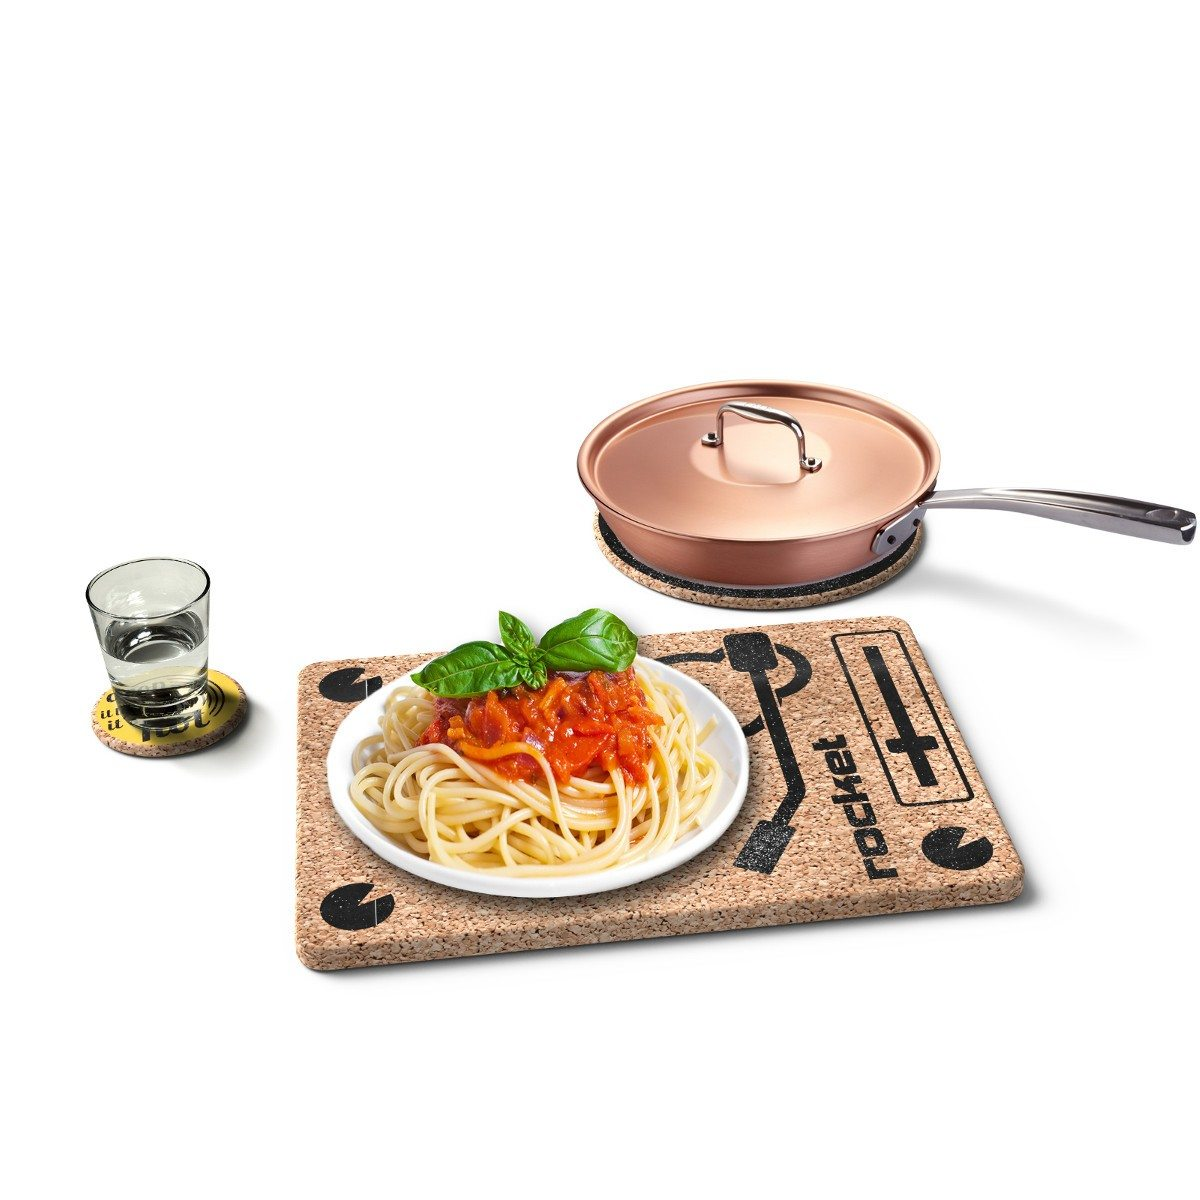 Set de table de dj cadeau cuisine et table rigolo Set de table a personnaliser